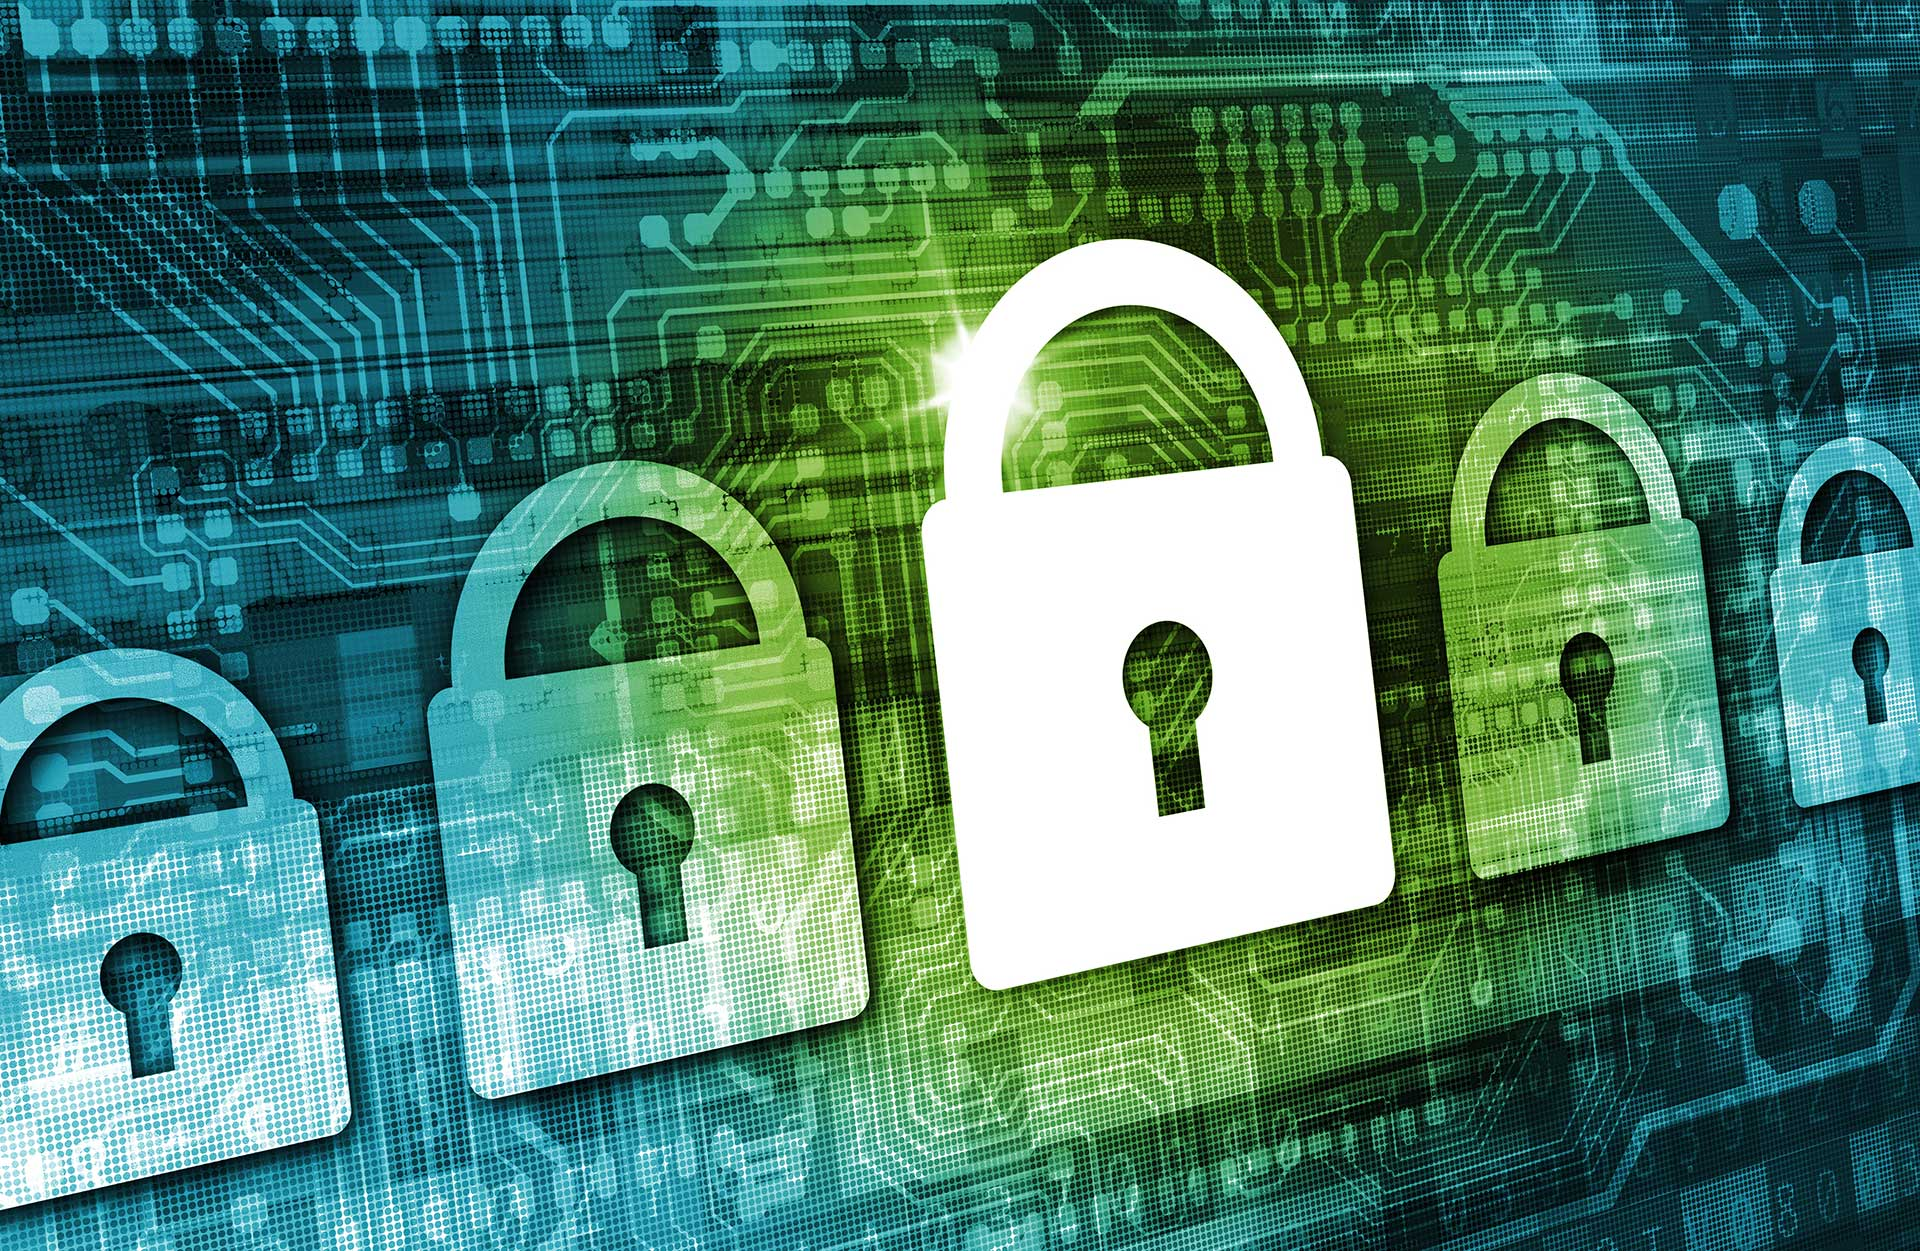 Digital security in industry – Vulnerabilities in industrial control systems